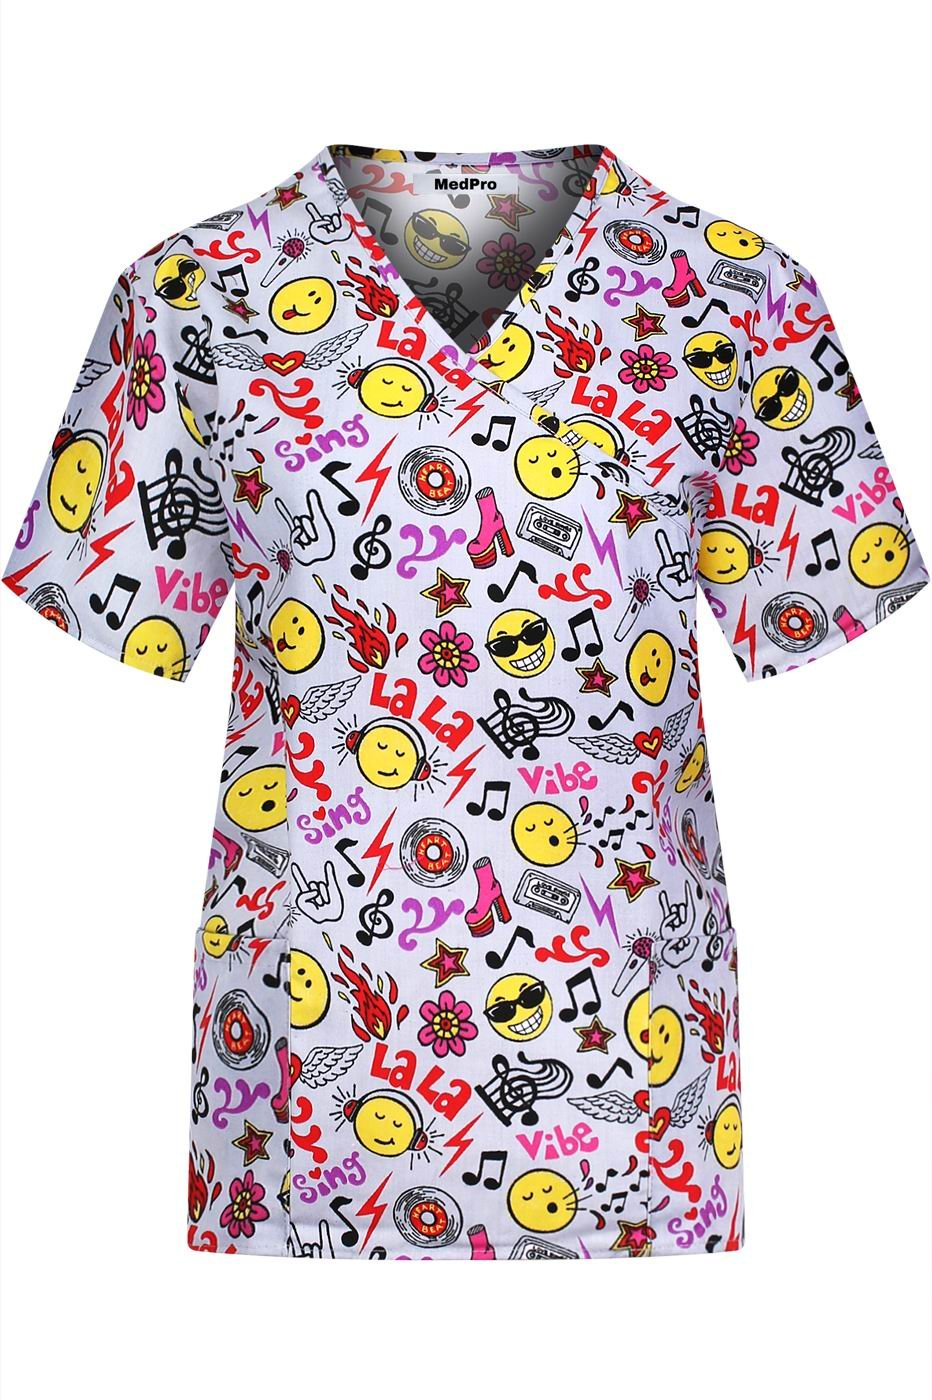 MedPro Women's Medical Scrub Set with Printed Top and Cargo Pants Yellow Pink 2XL(9003-1188GR) by MedPro (Image #2)